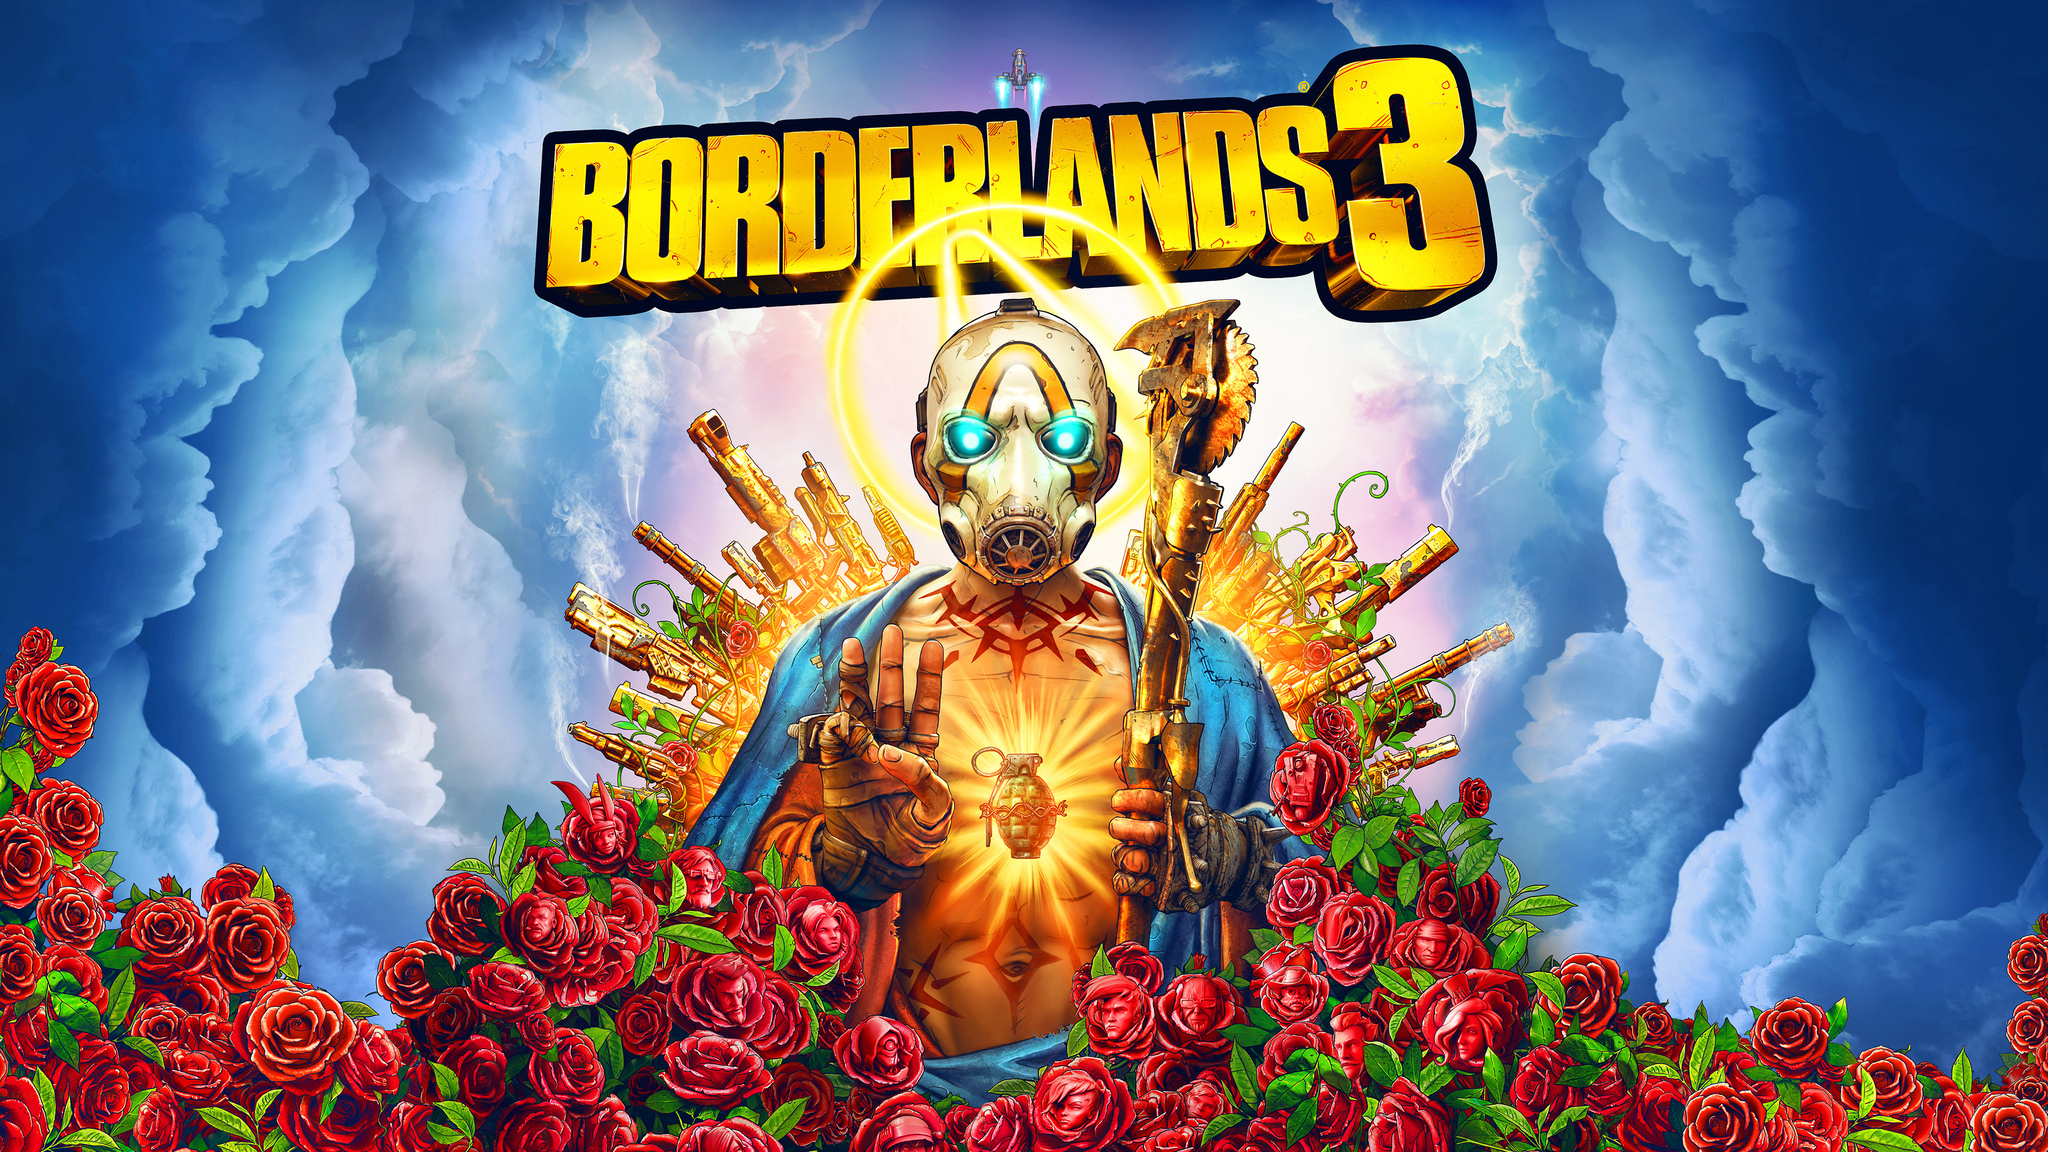 2048x1152 Borderlands 3 Poster 2019 2048x1152 Resolution